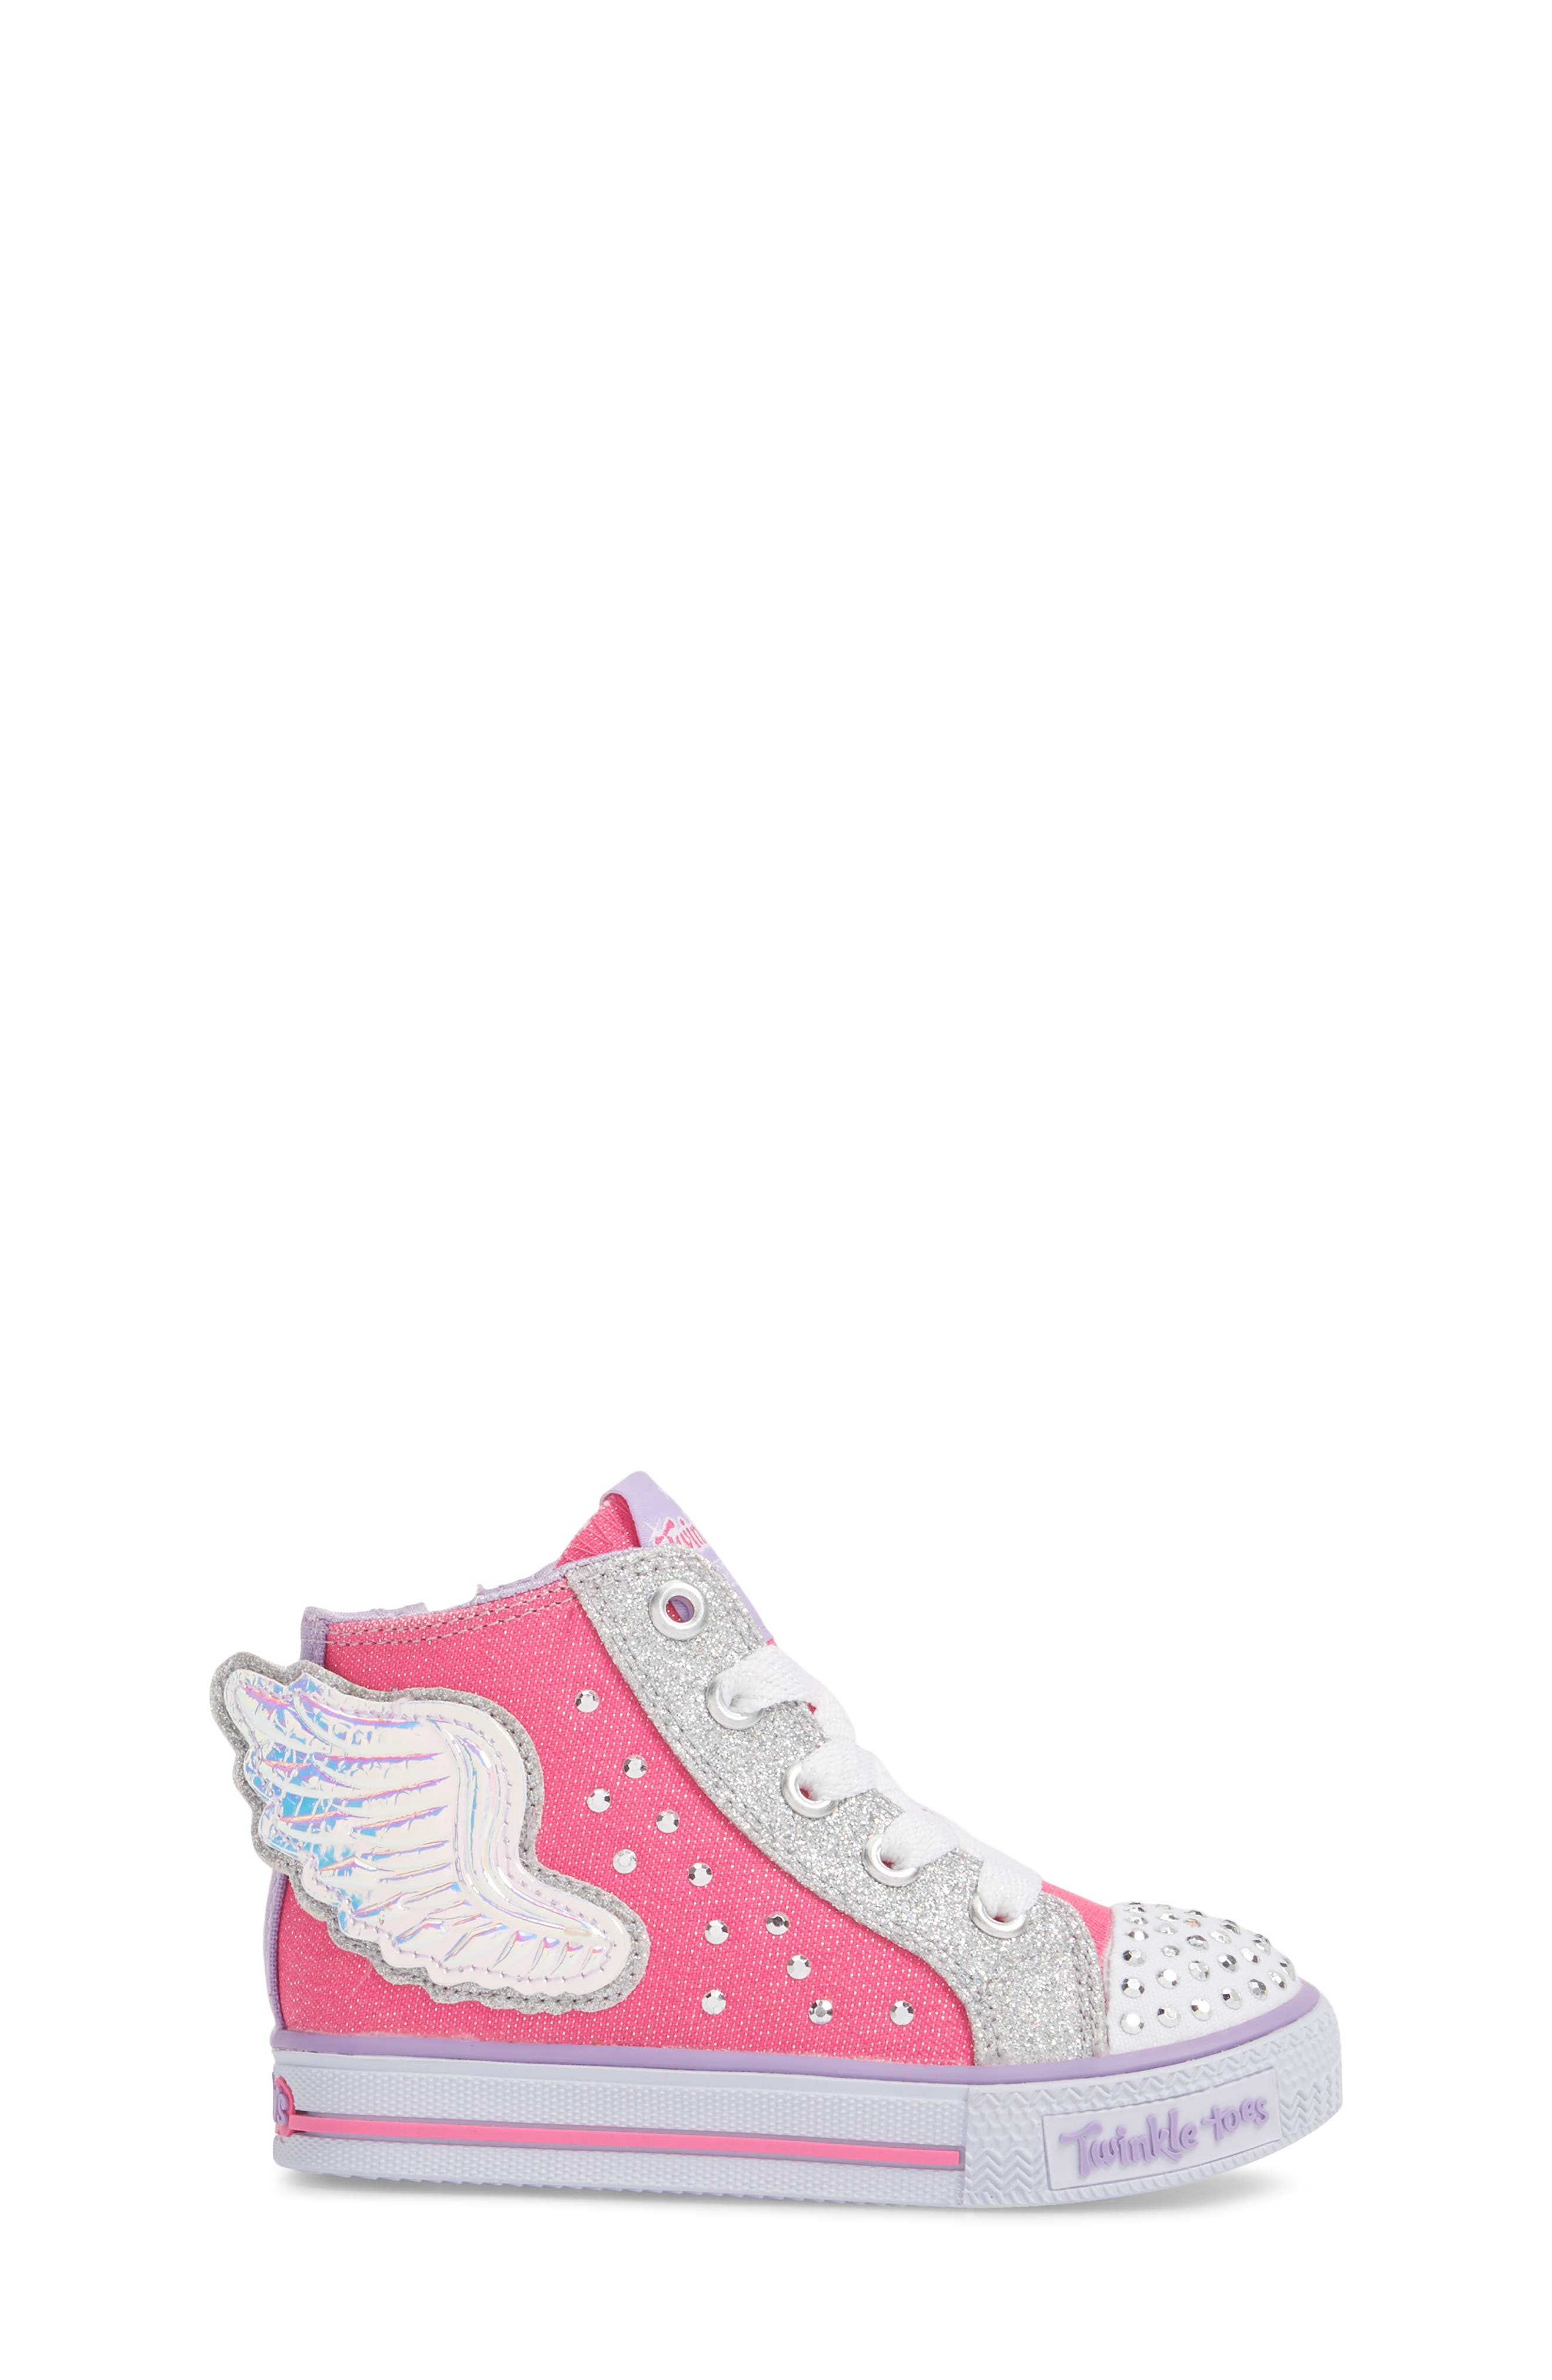 Twinkle Toes Shuffles Fooling Flutters Light-Up High Top Sneaker,                             Alternate thumbnail 3, color,                             650